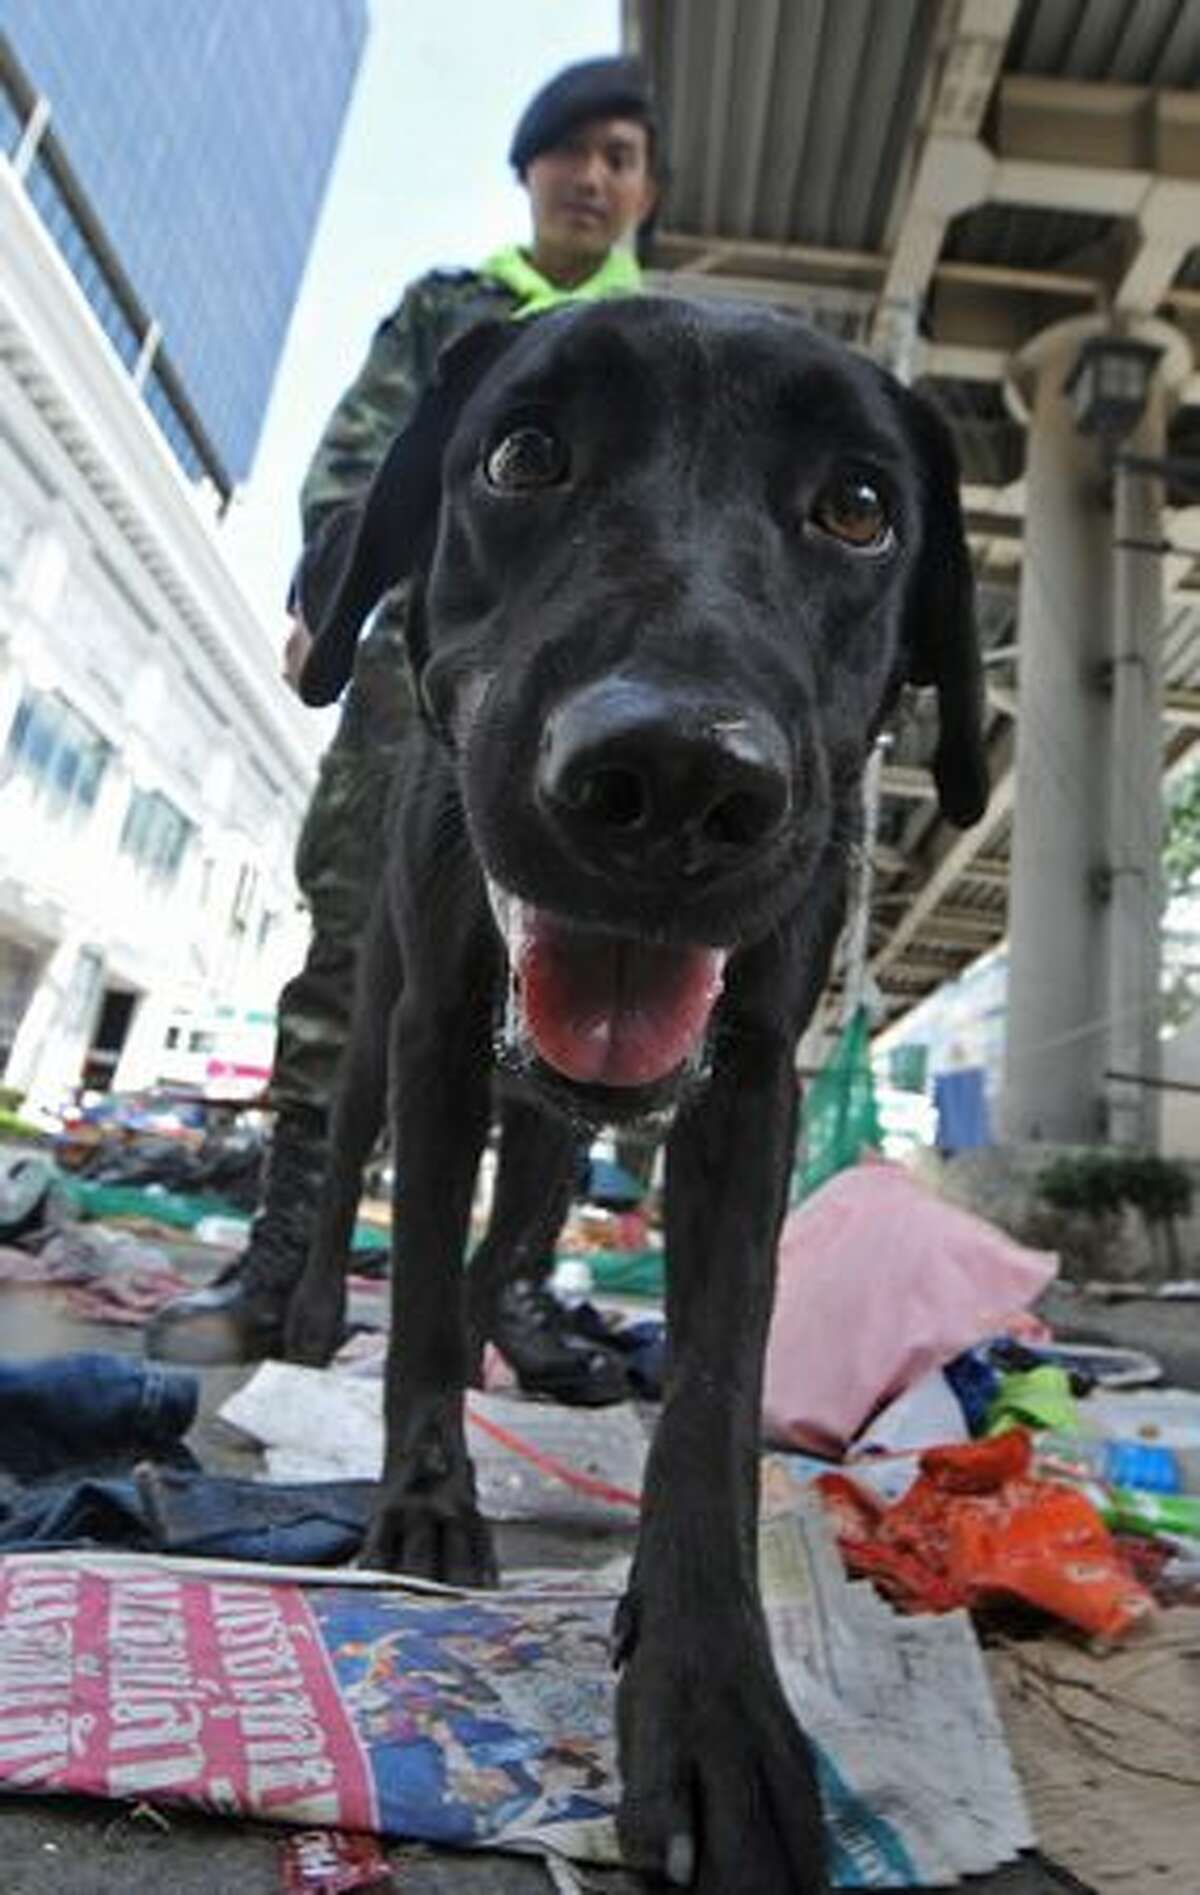 A sniffer dog checks security at anti-government main protest area in Bangkok. Thailand picked up the pieces after violence and mayhem triggered by a crackdown on anti-government protests, as the focus swung to recovery and reconciliation in a divided nation.